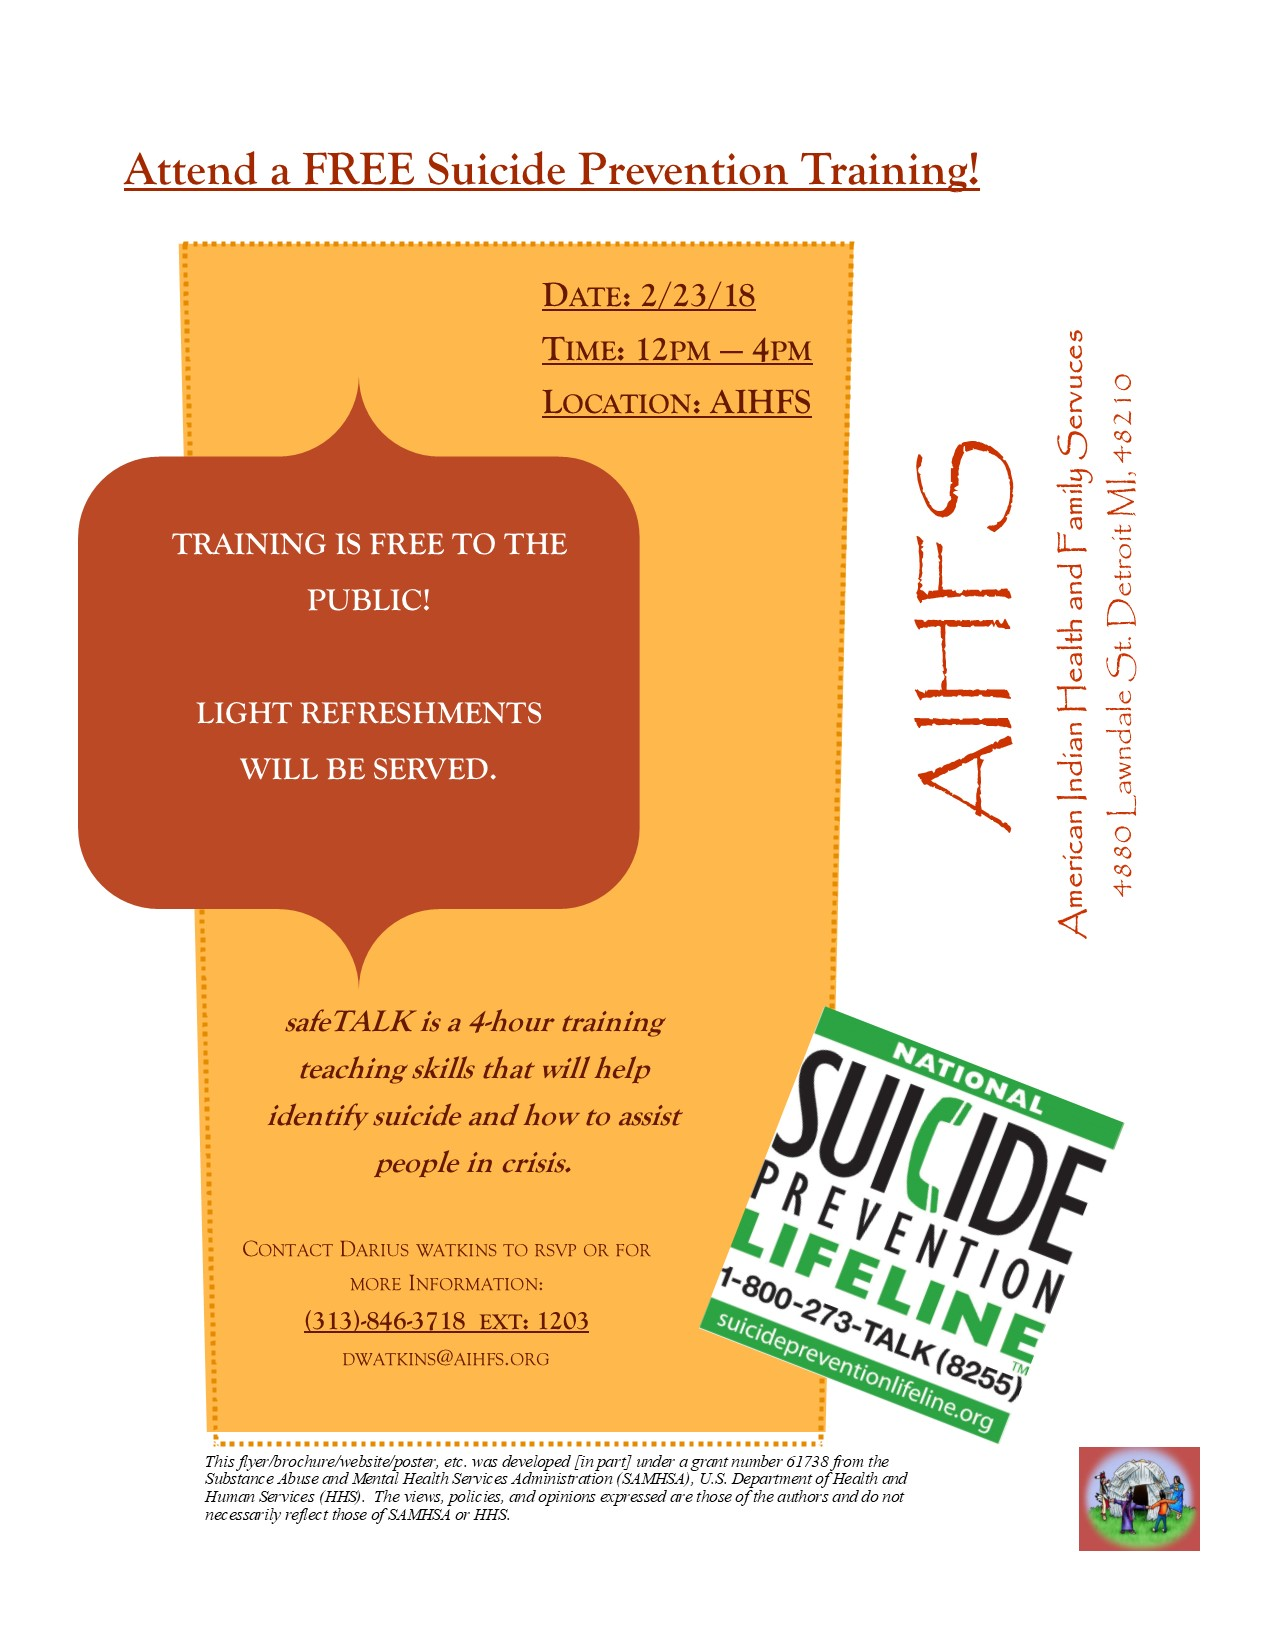 Aihfs community announcements regardless of prior experience or training to become a suicide alert helper if you or someone you know is possibly experiencing a suicidal crisis aiddatafo Image collections